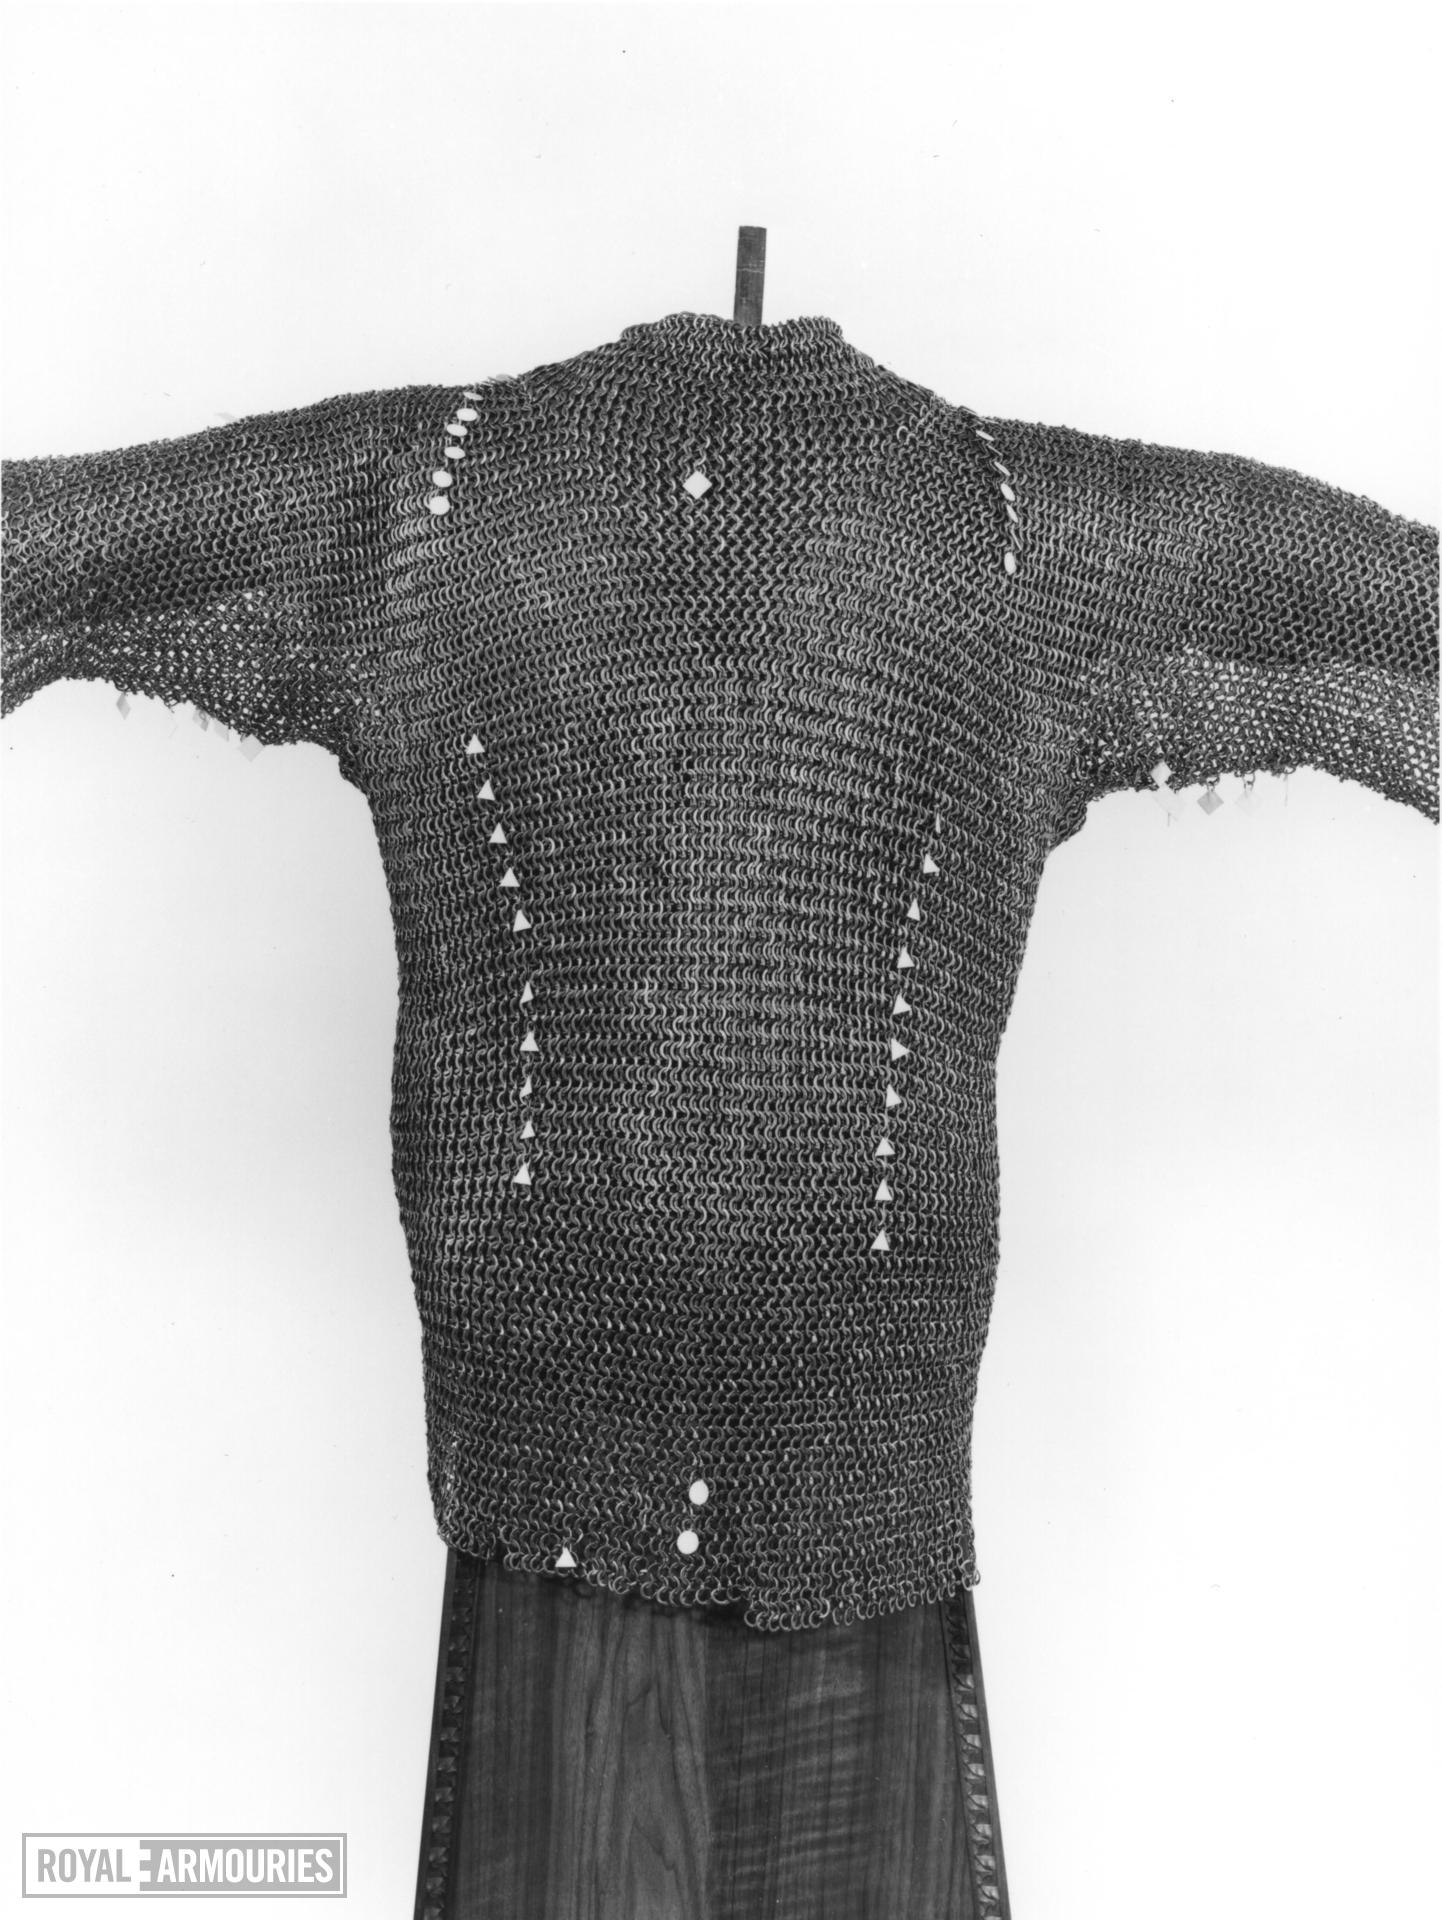 Mail shirt Traditionally of Rudolph IV of Hapsburg, Duke of Austria, Carinthia and Ferrette (1339-1365)